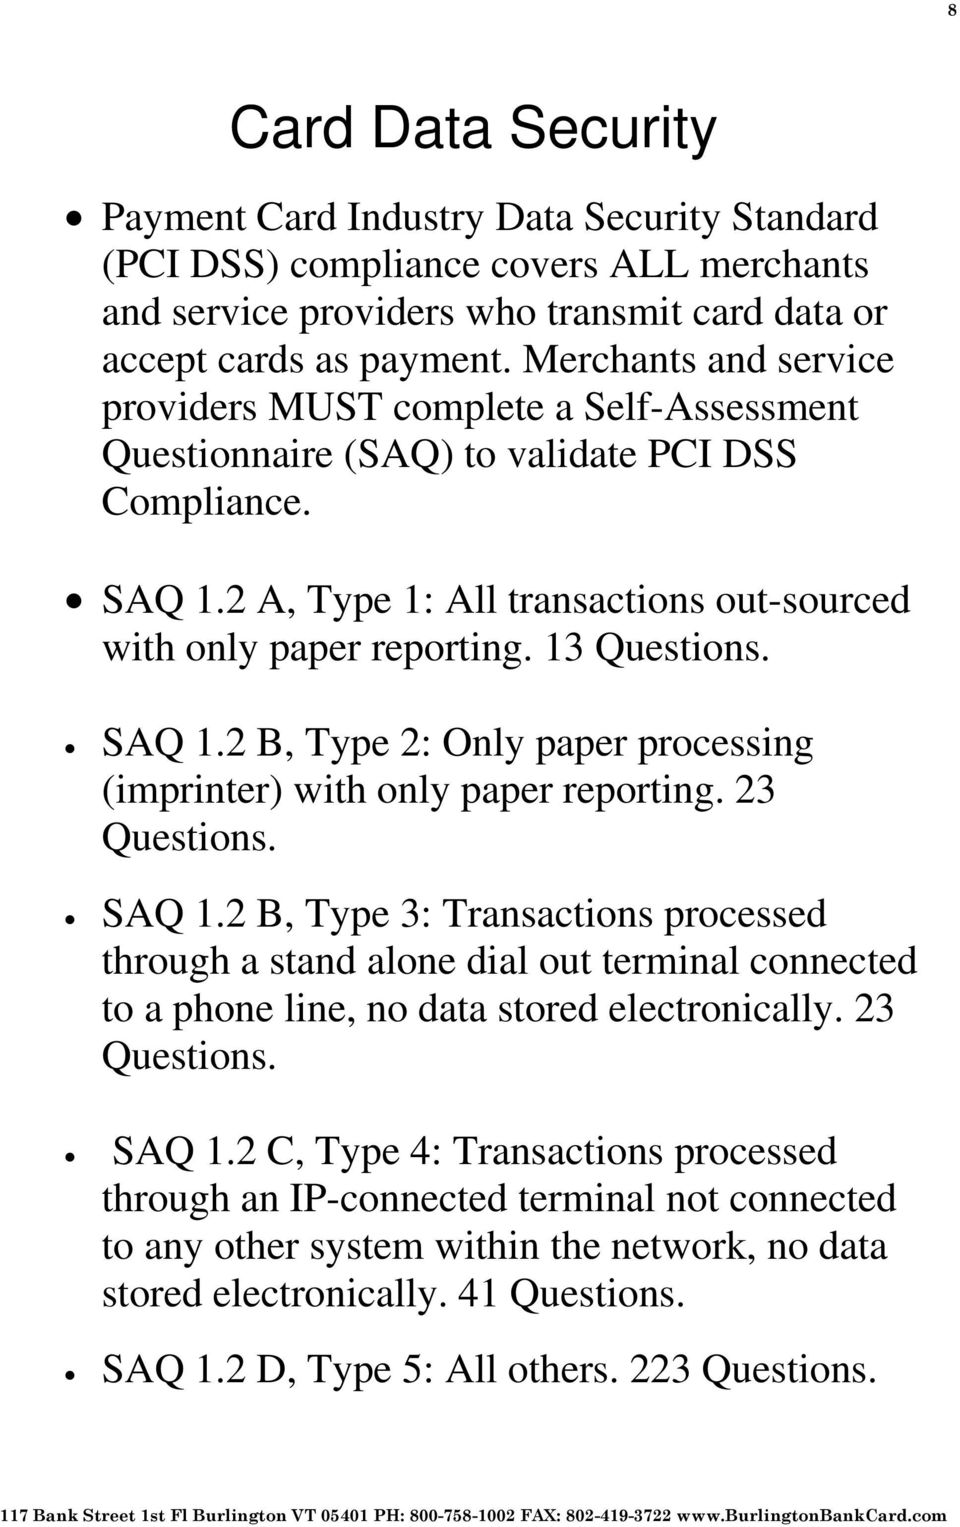 13 Questions. SAQ 1.2 B, Type 2: Only paper processing (imprinter) with only paper reporting. 23 Questions. SAQ 1.2 B, Type 3: Transactions processed through a stand alone dial out terminal connected to a phone line, no data stored electronically.